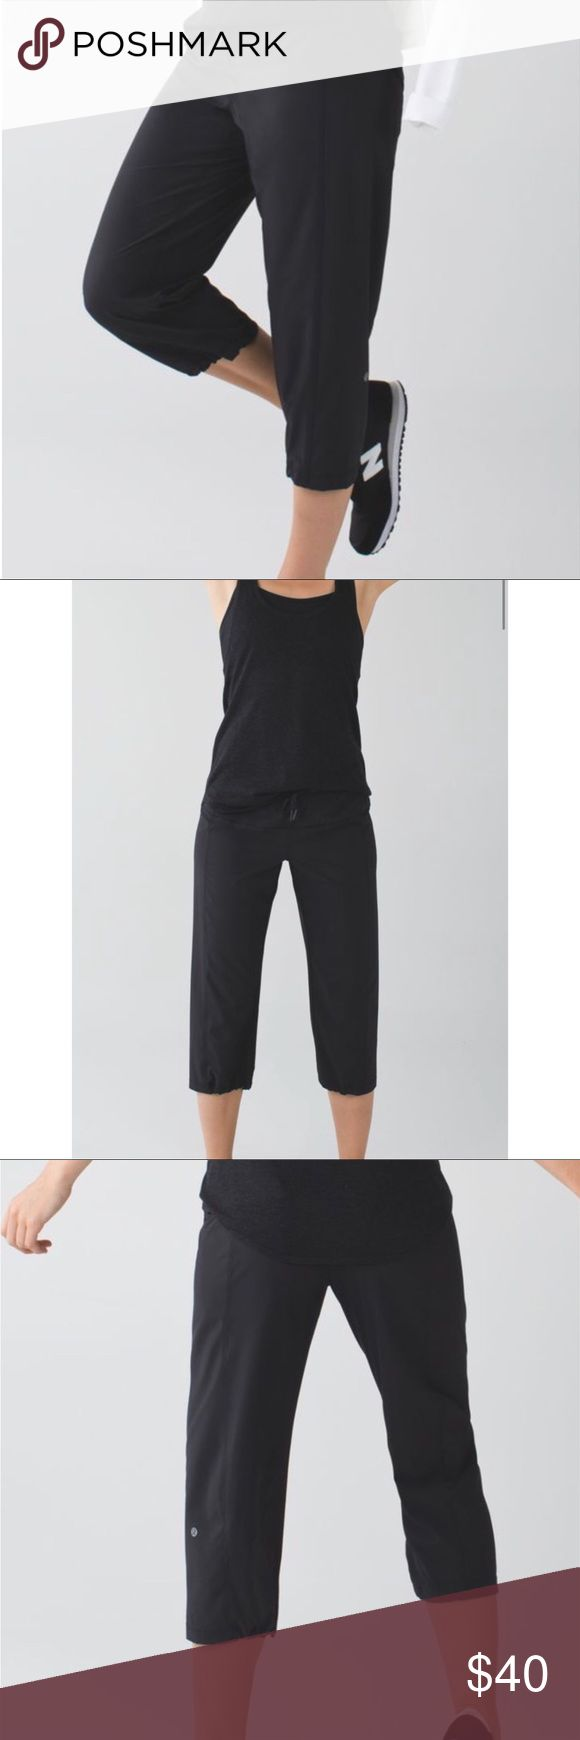 """Lululemon Step Lively Crop * loose fit layers easily to provide extra coverage post-sweat * lightweight Swift fabric is two-way stretch to move with you * cinch the drawcords at the hem to adjust the length * tighten the drawcord at the waist to keep these crops in place * stash your stuff in the secure zipper pocket on the bum * say no to chafing with flat seams * rise: medium * leg fit: loose * inseam: 20 7/8"""" * hem sweep: 17 3/4"""" lululemon athletica Pants Track Pants & Joggers"""